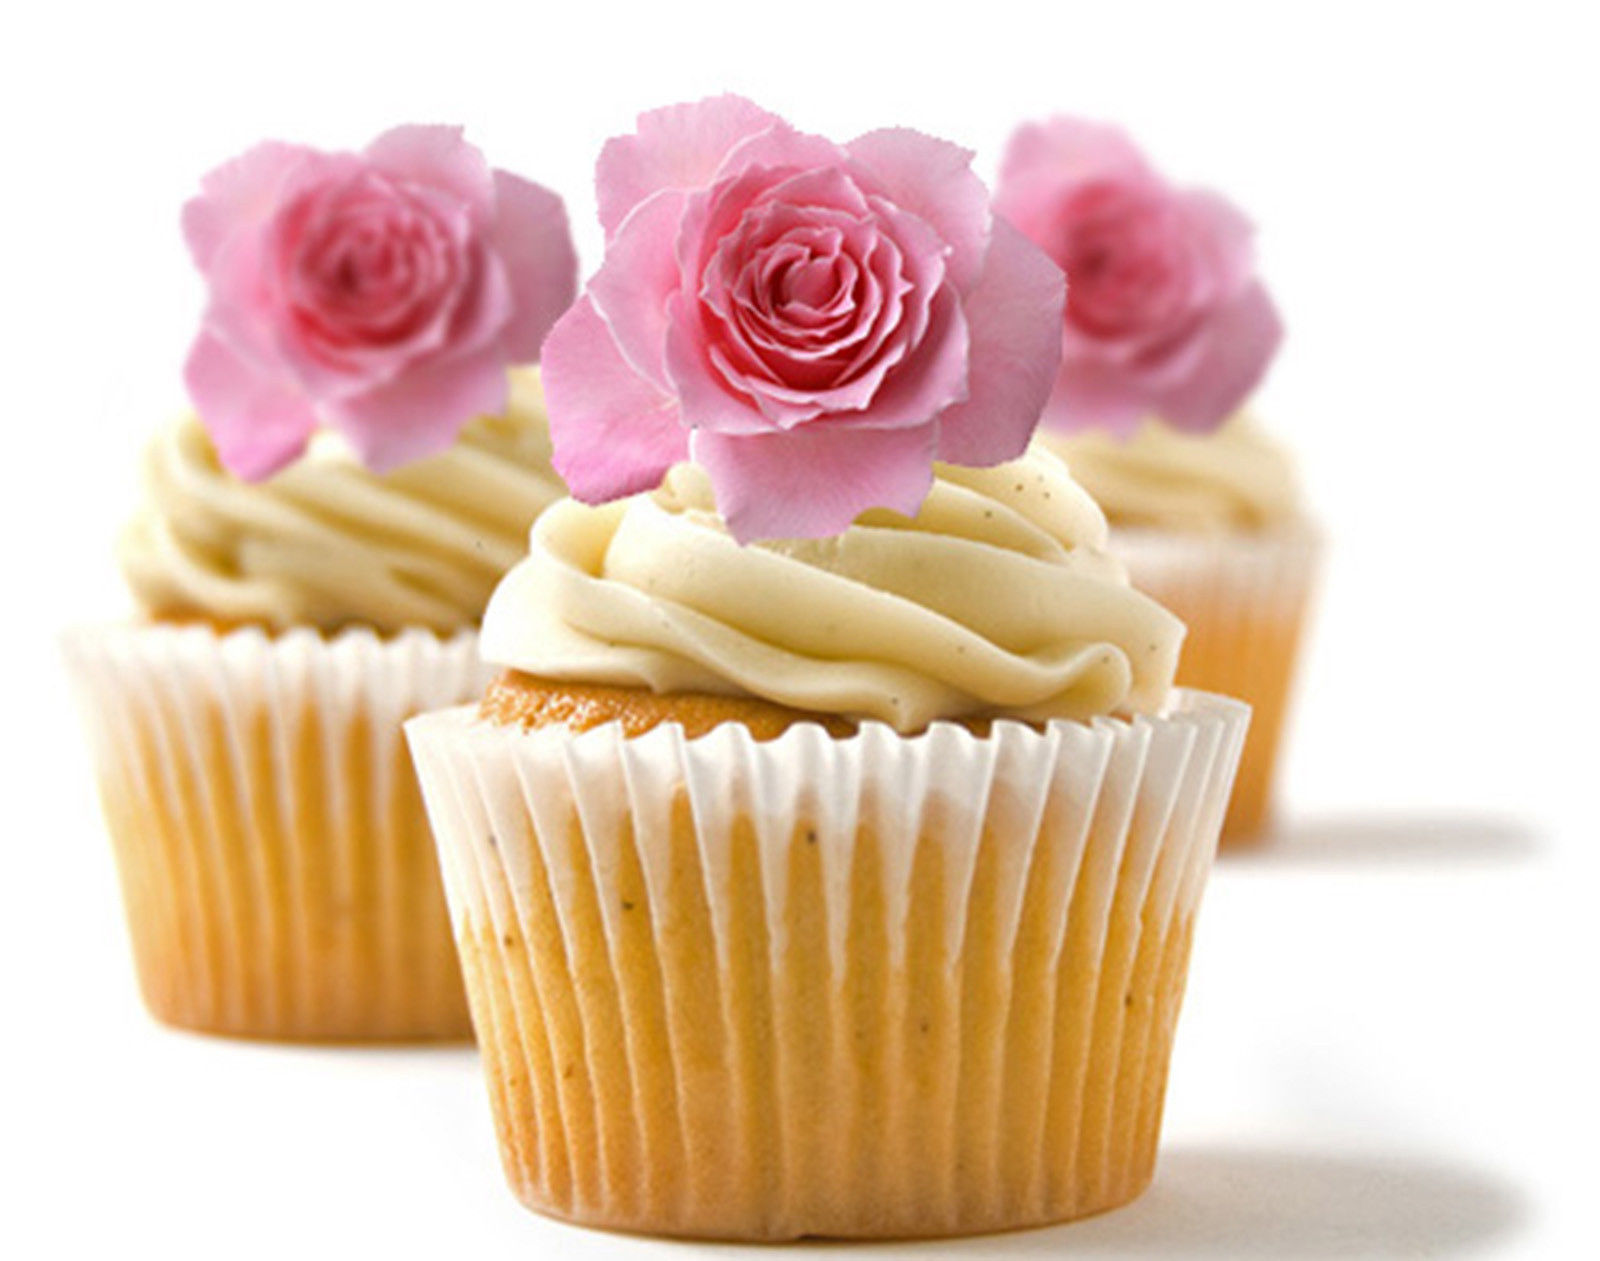 24 edible rice paper cup cake topper decorations rose